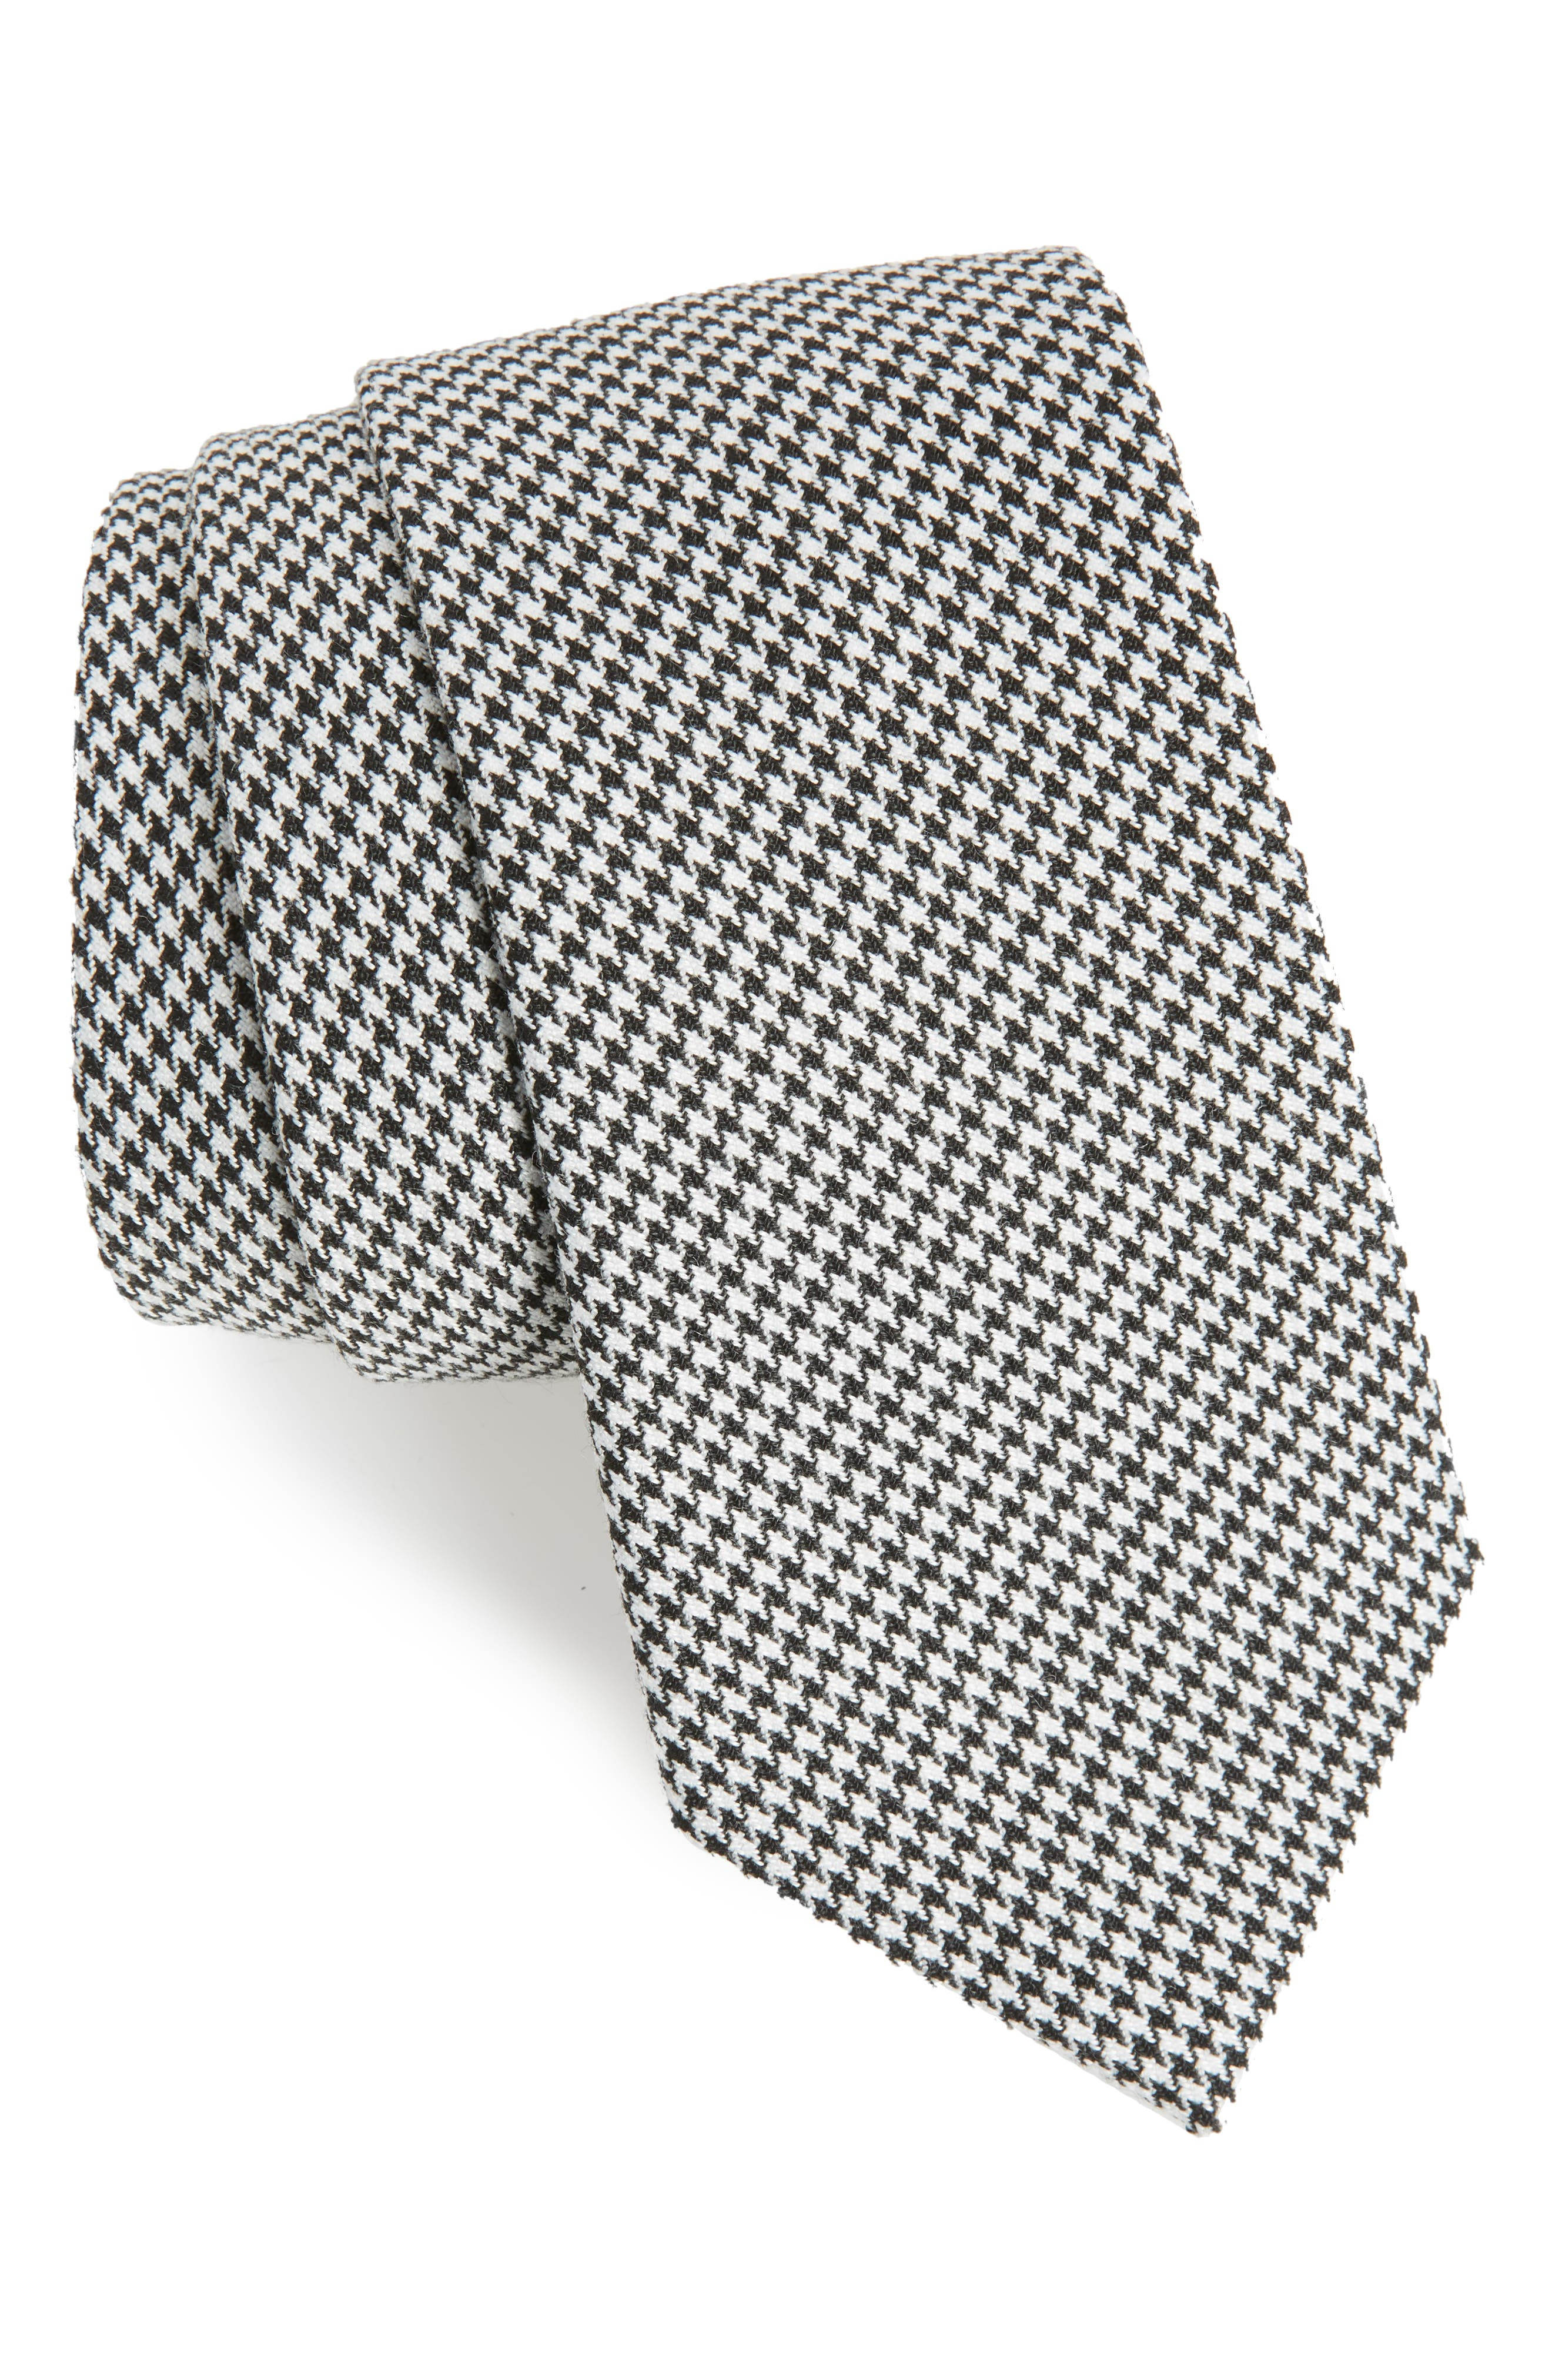 Houndstooth Woven Tie,                         Main,                         color, Black